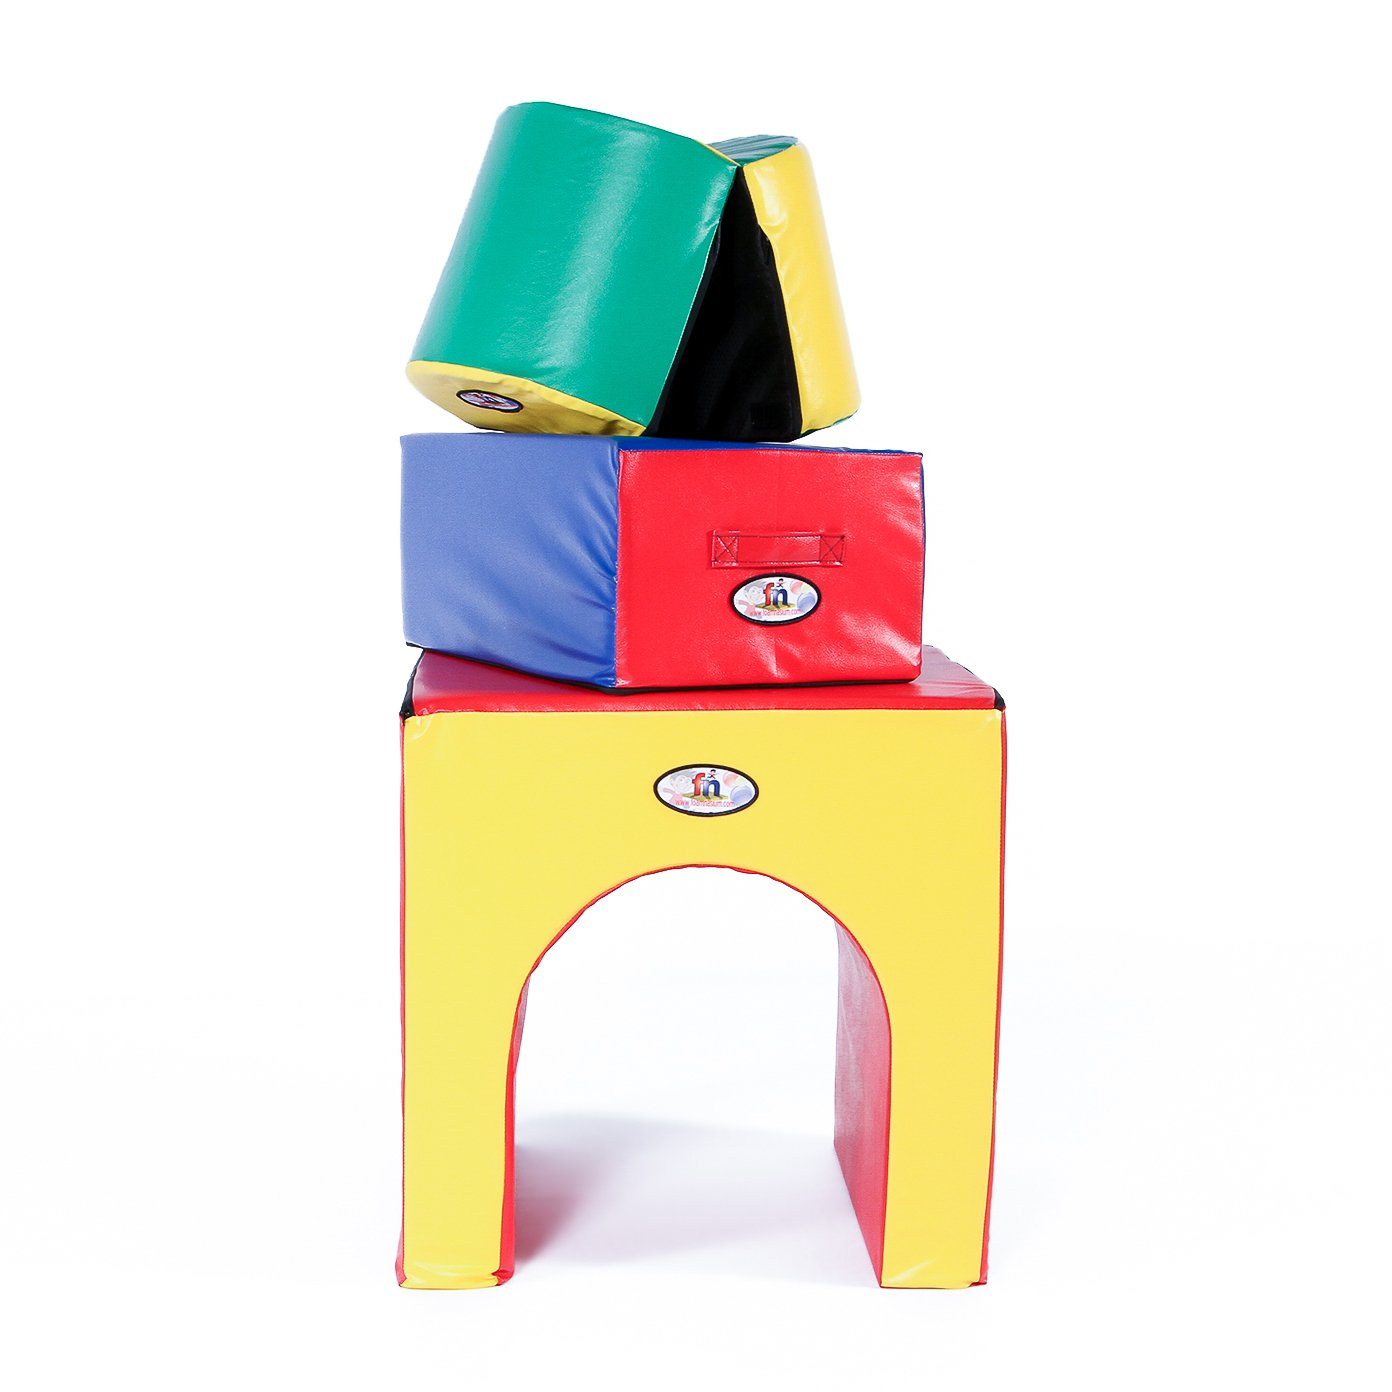 Foamnasium Tunnel of Fun Playset